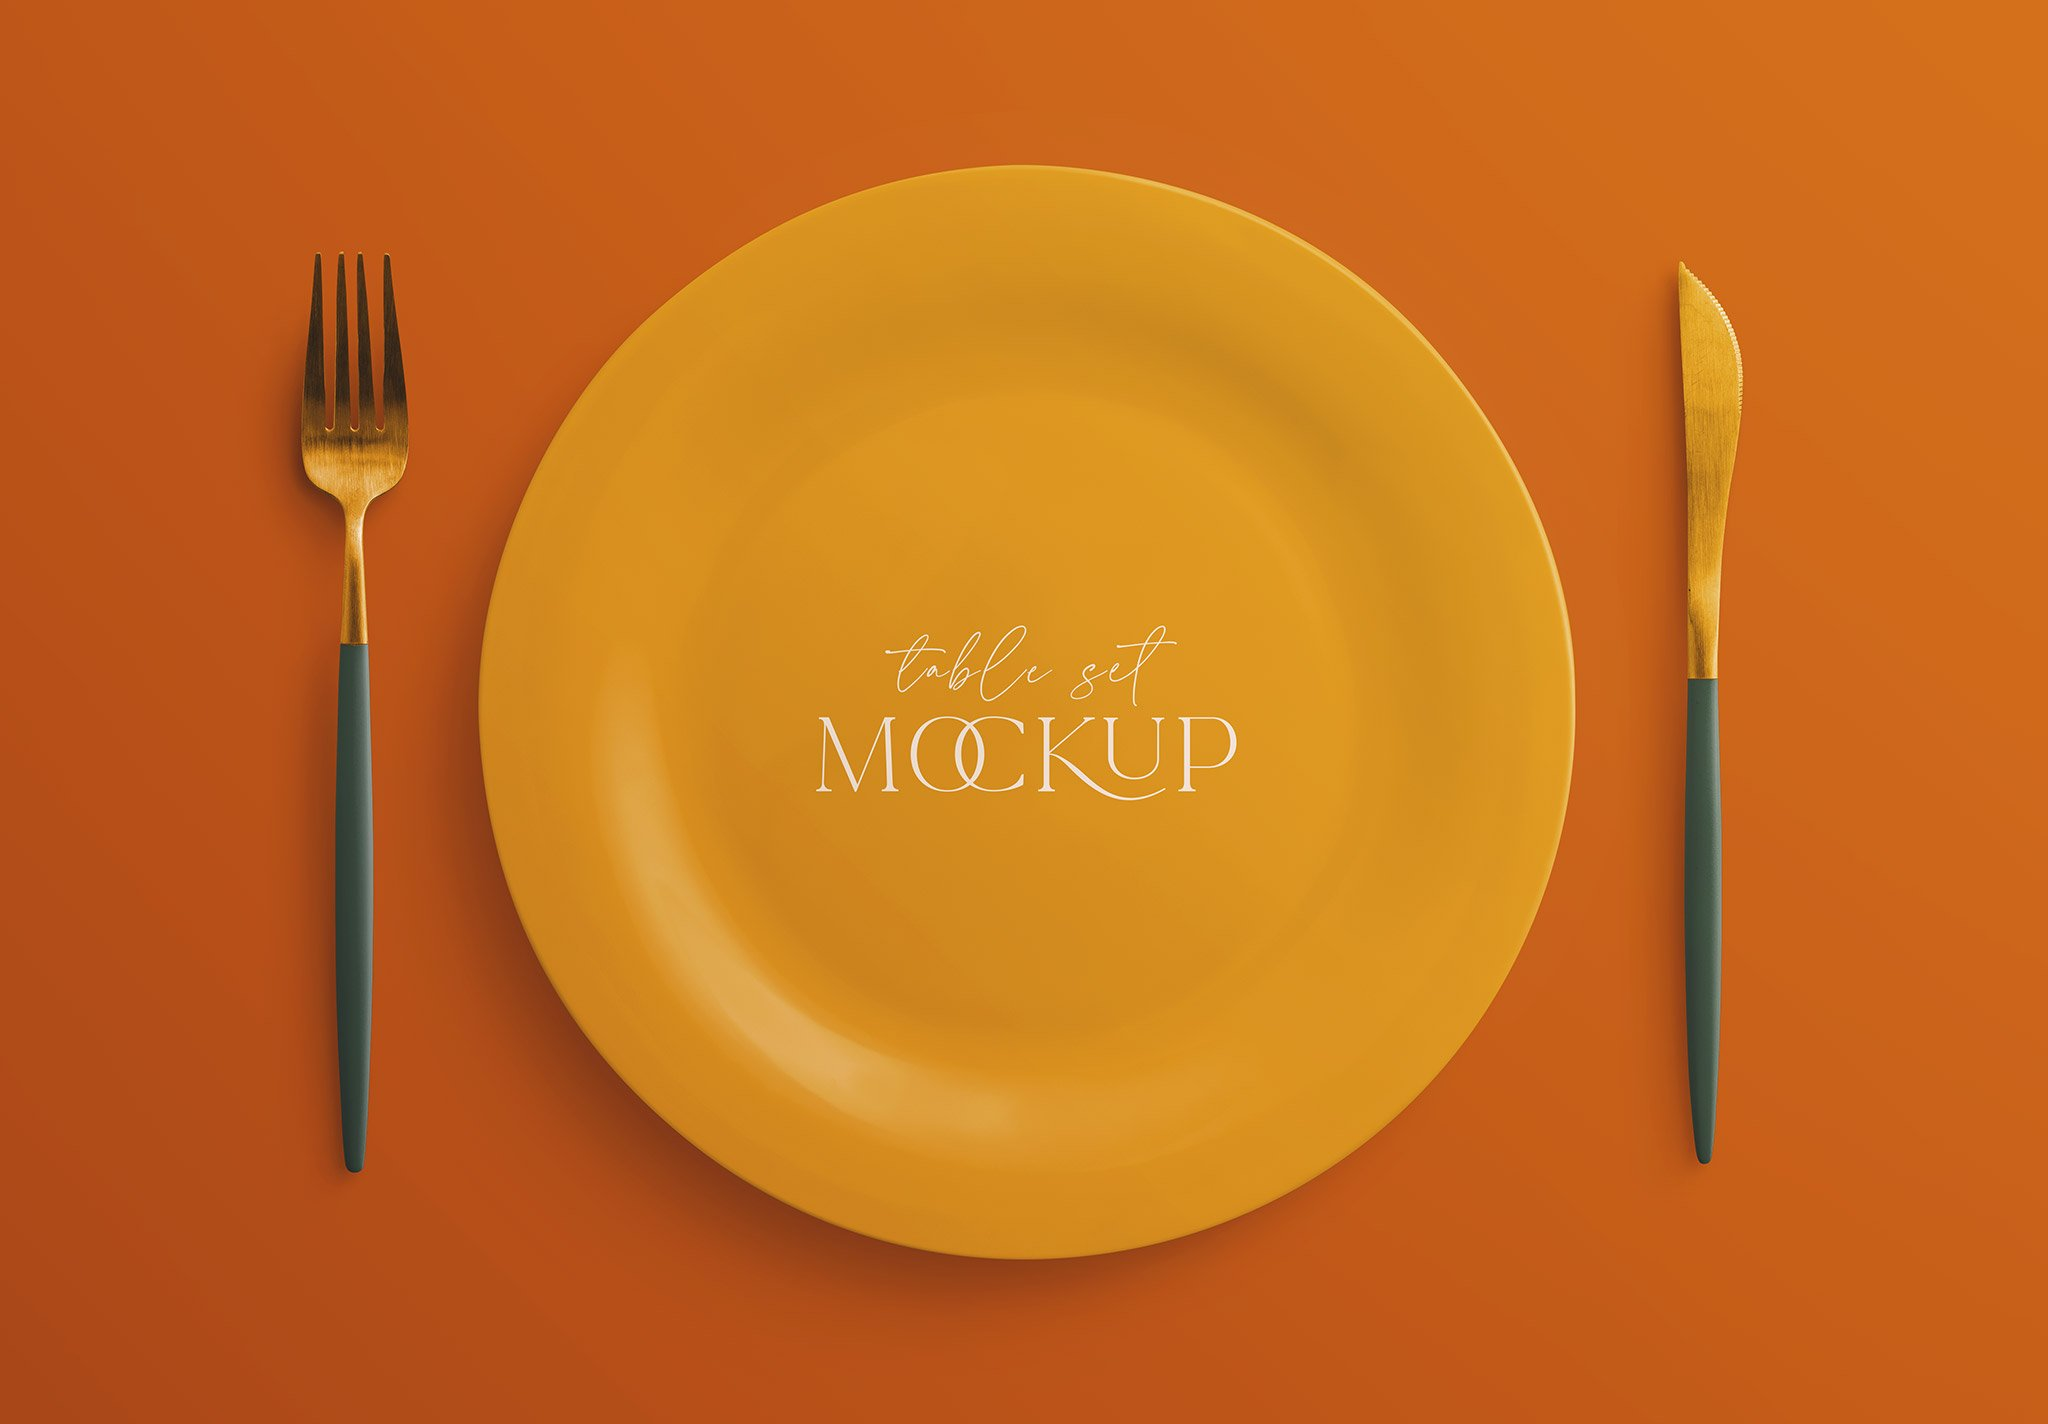 table set mockup plate and cutlery image03